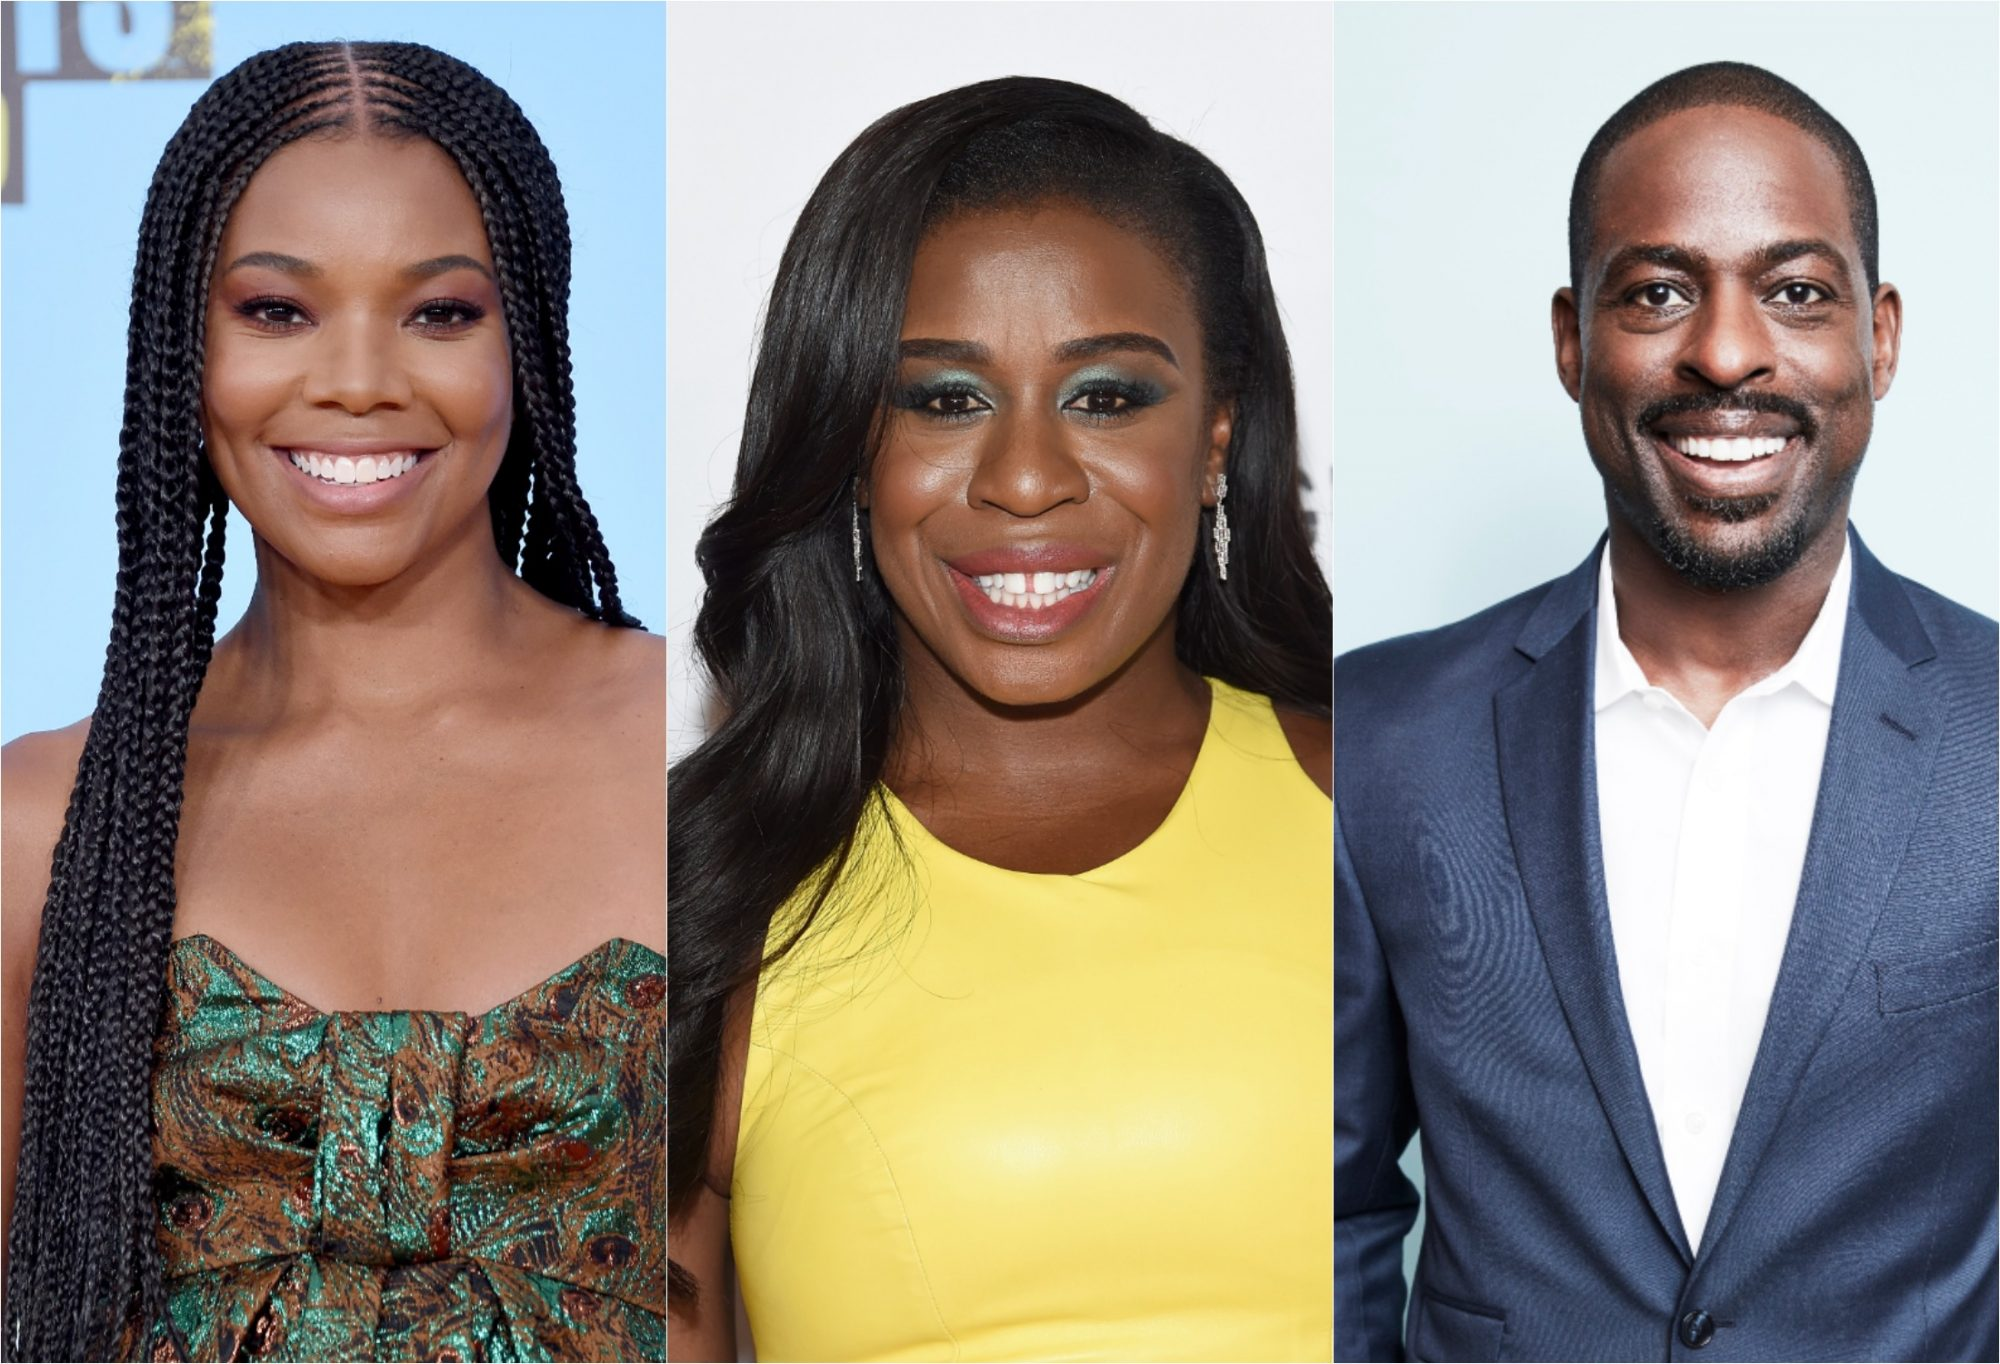 gabrielle union friends table read cast